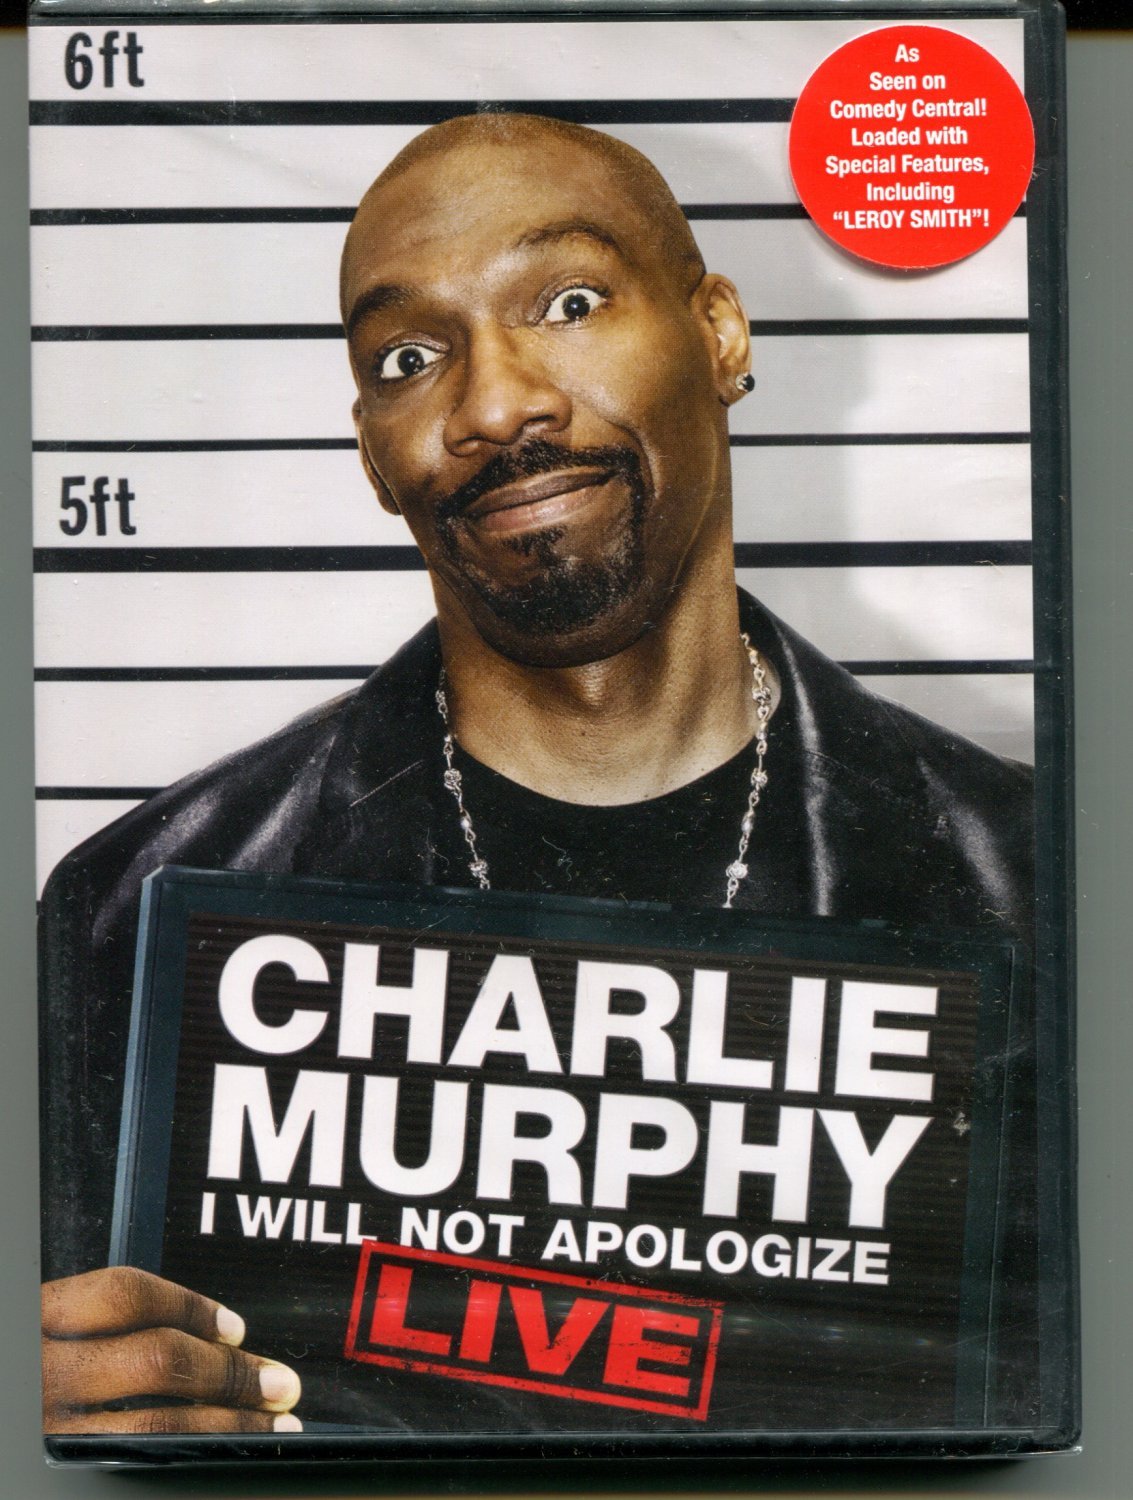 CHARLIE MURPHY I WILL NOT APOLOGIZE LIVE (2009)